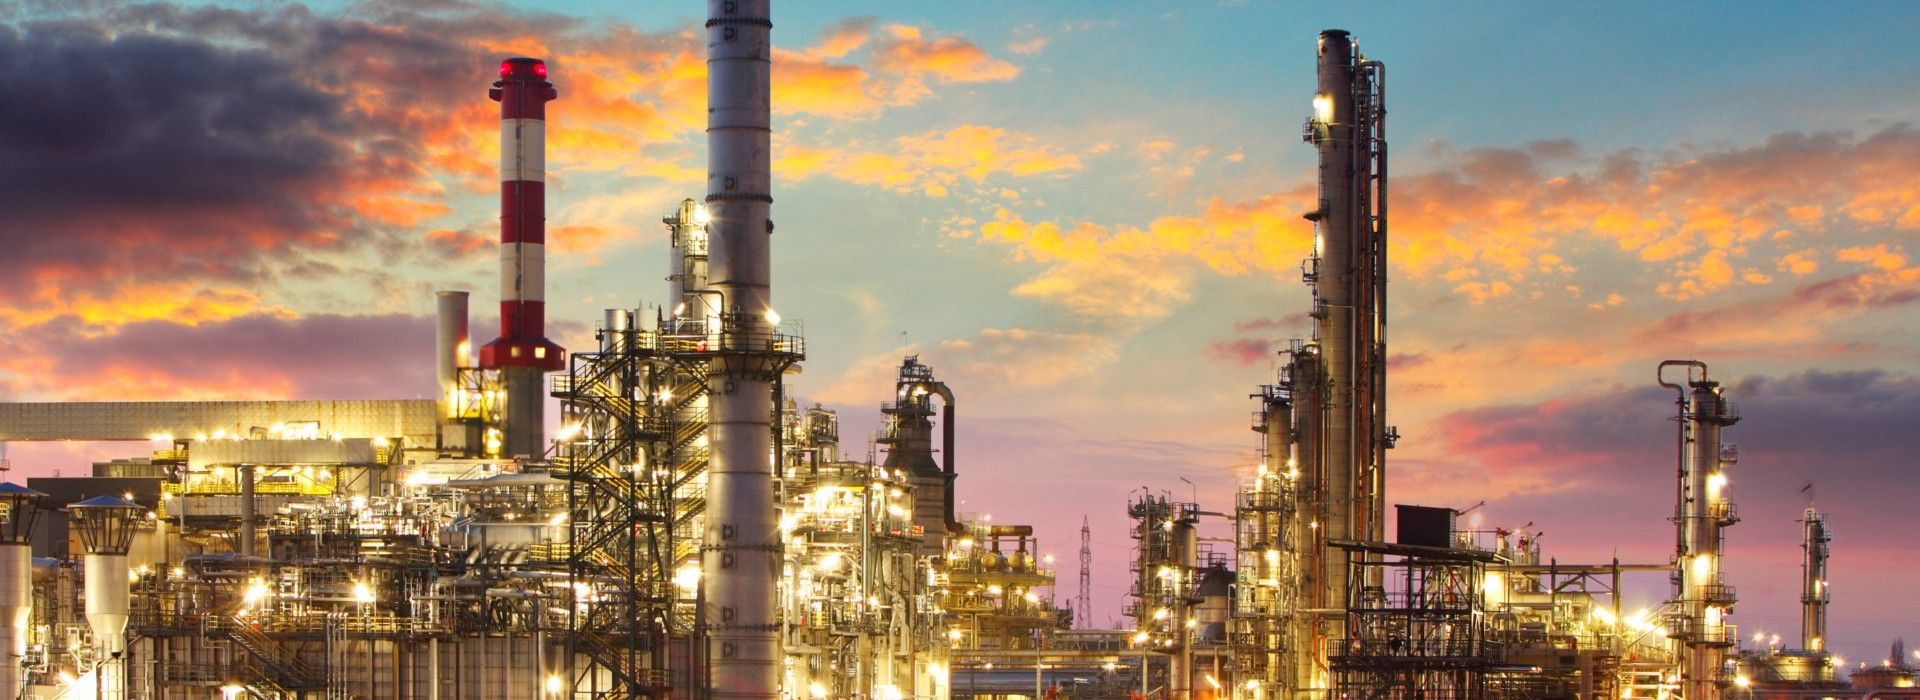 We Are A Leading Manufacturer And Supplier Of Industrial Gases